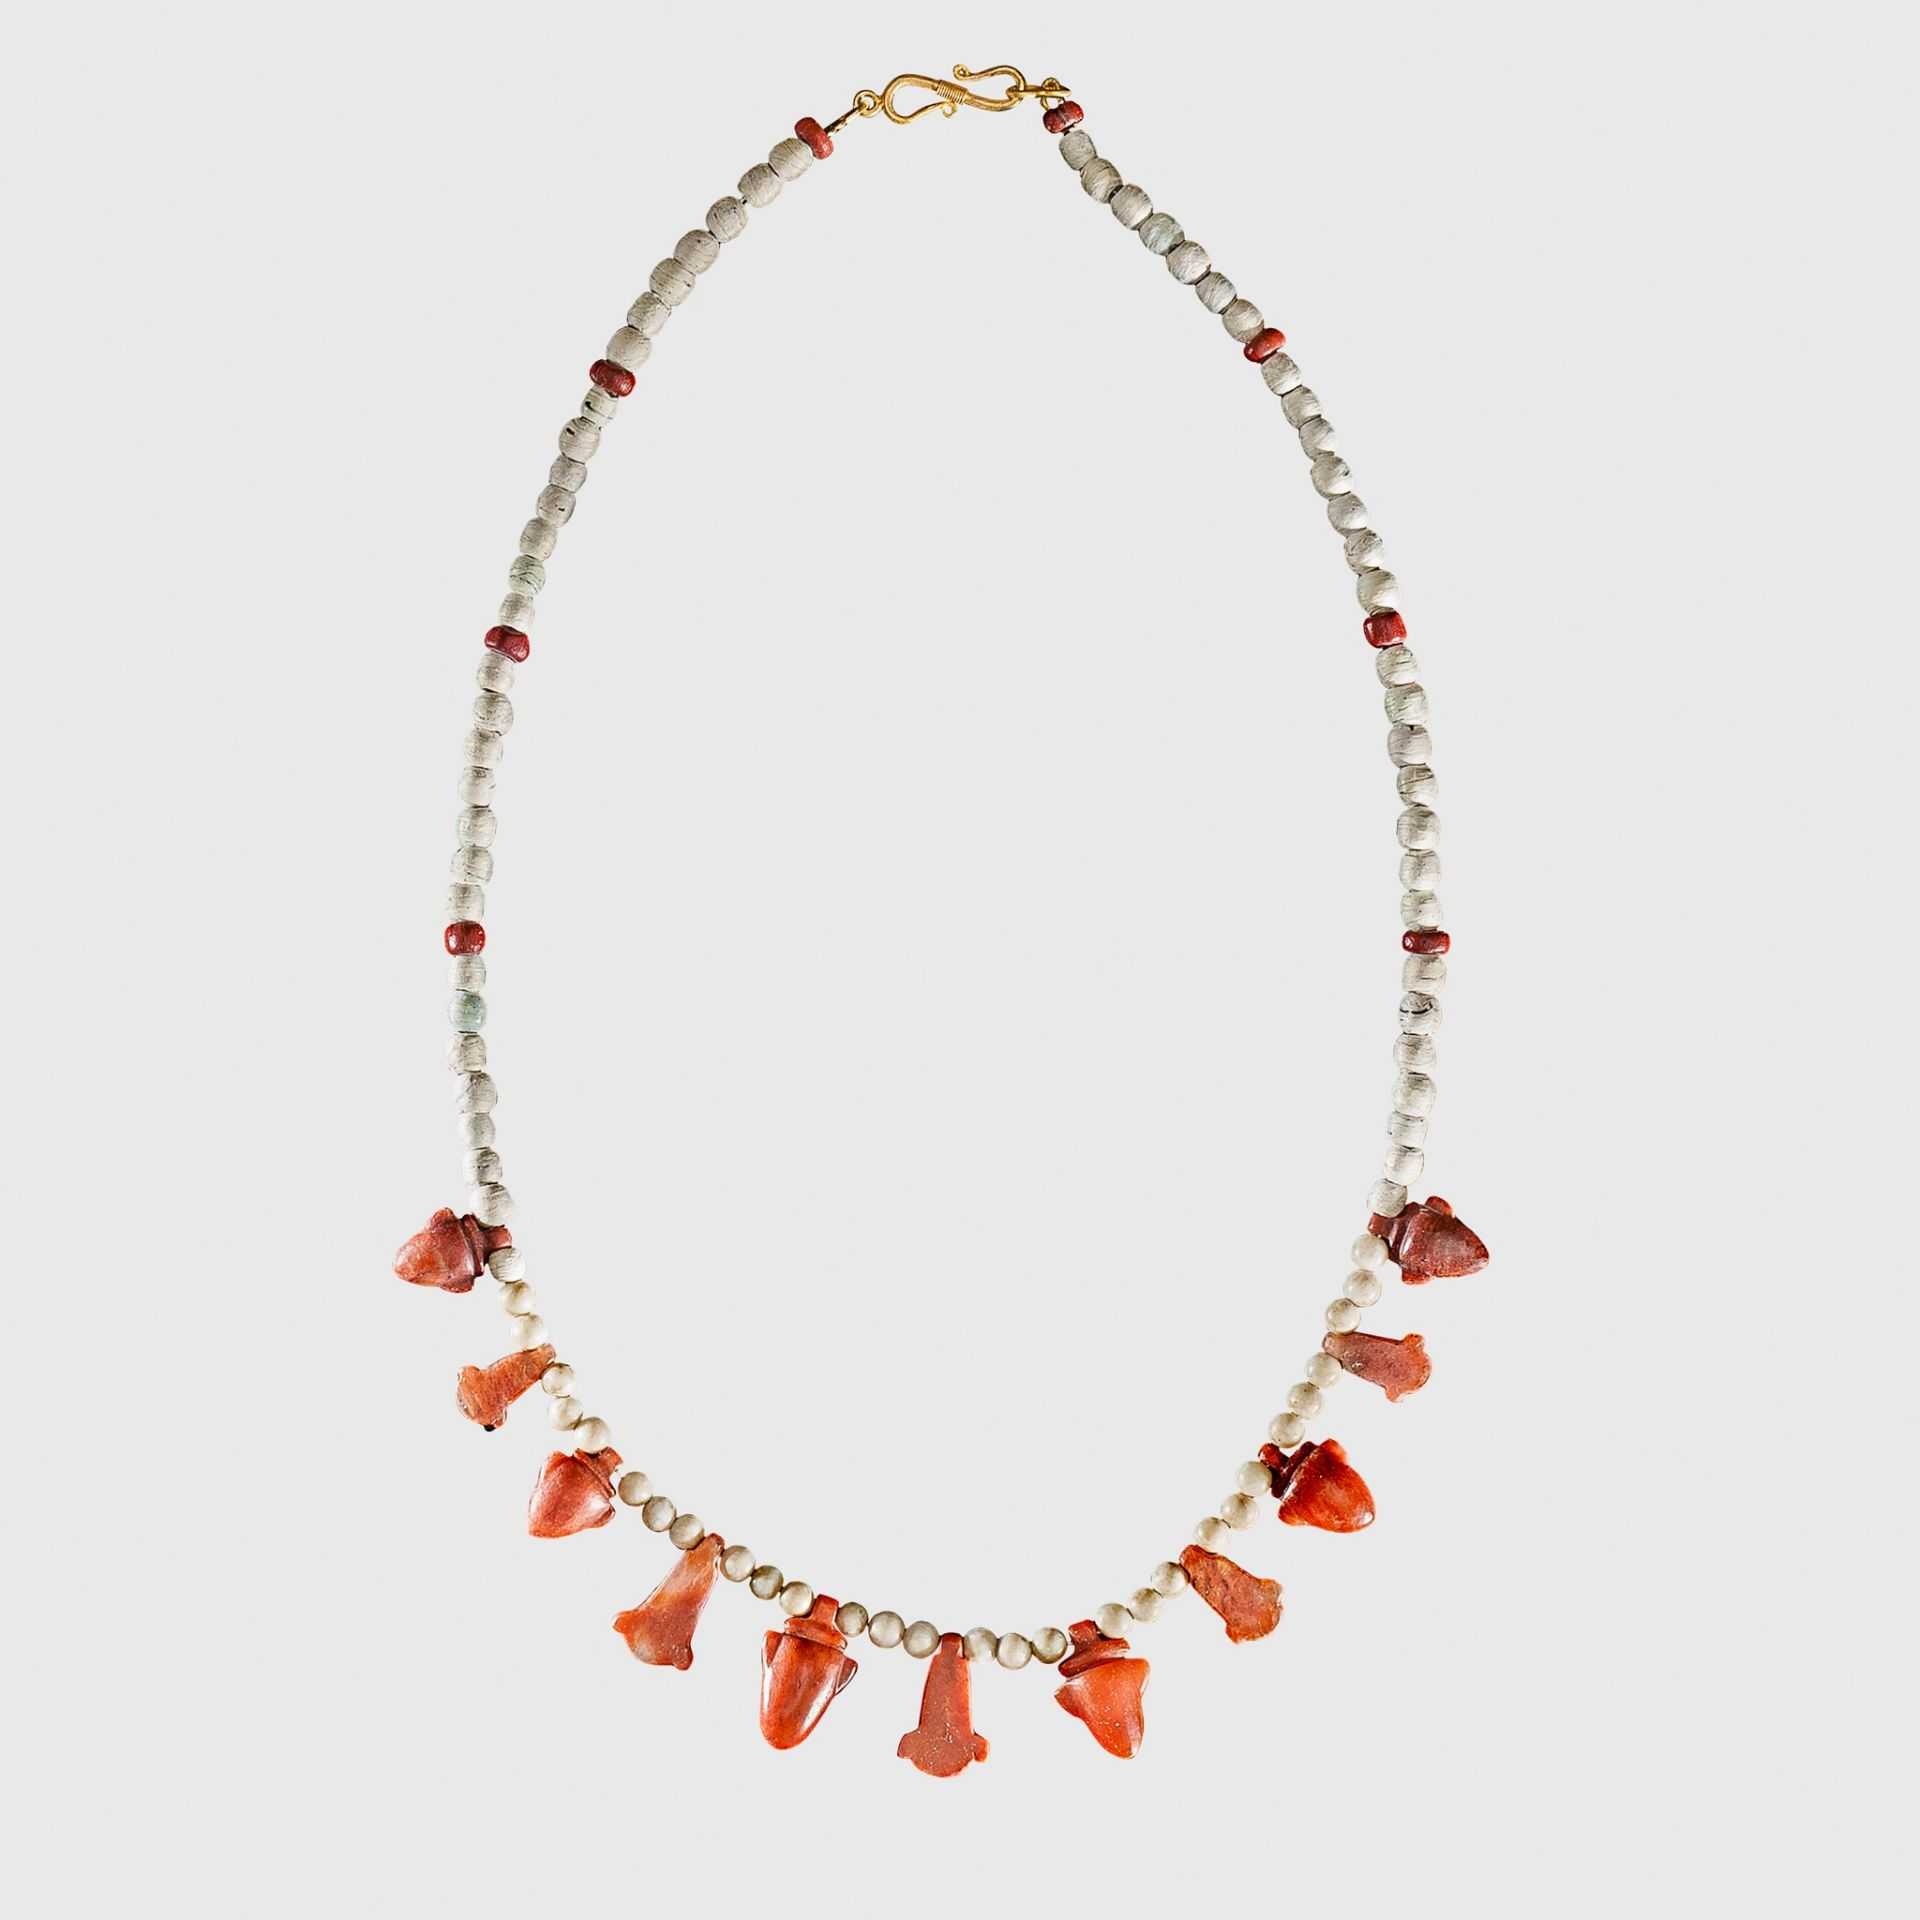 ANCIENT EGYPTIAN JASPER NECKLACE EGYPT, LATE PERIOD, 664 - 323 B.C.